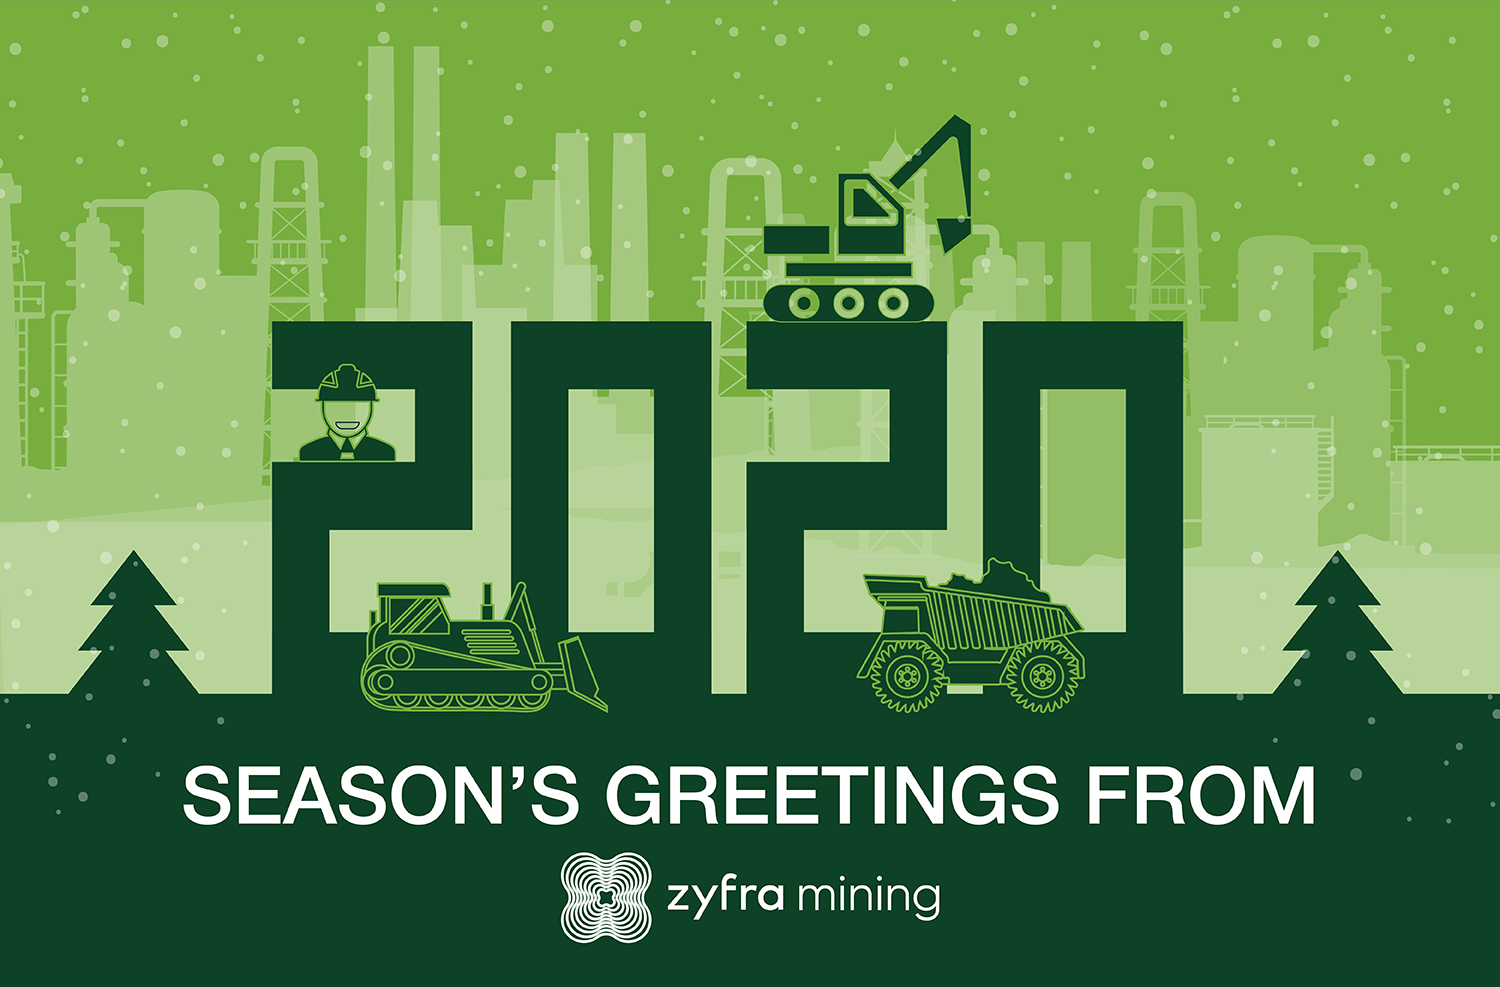 season's greetings from zyfra mining!